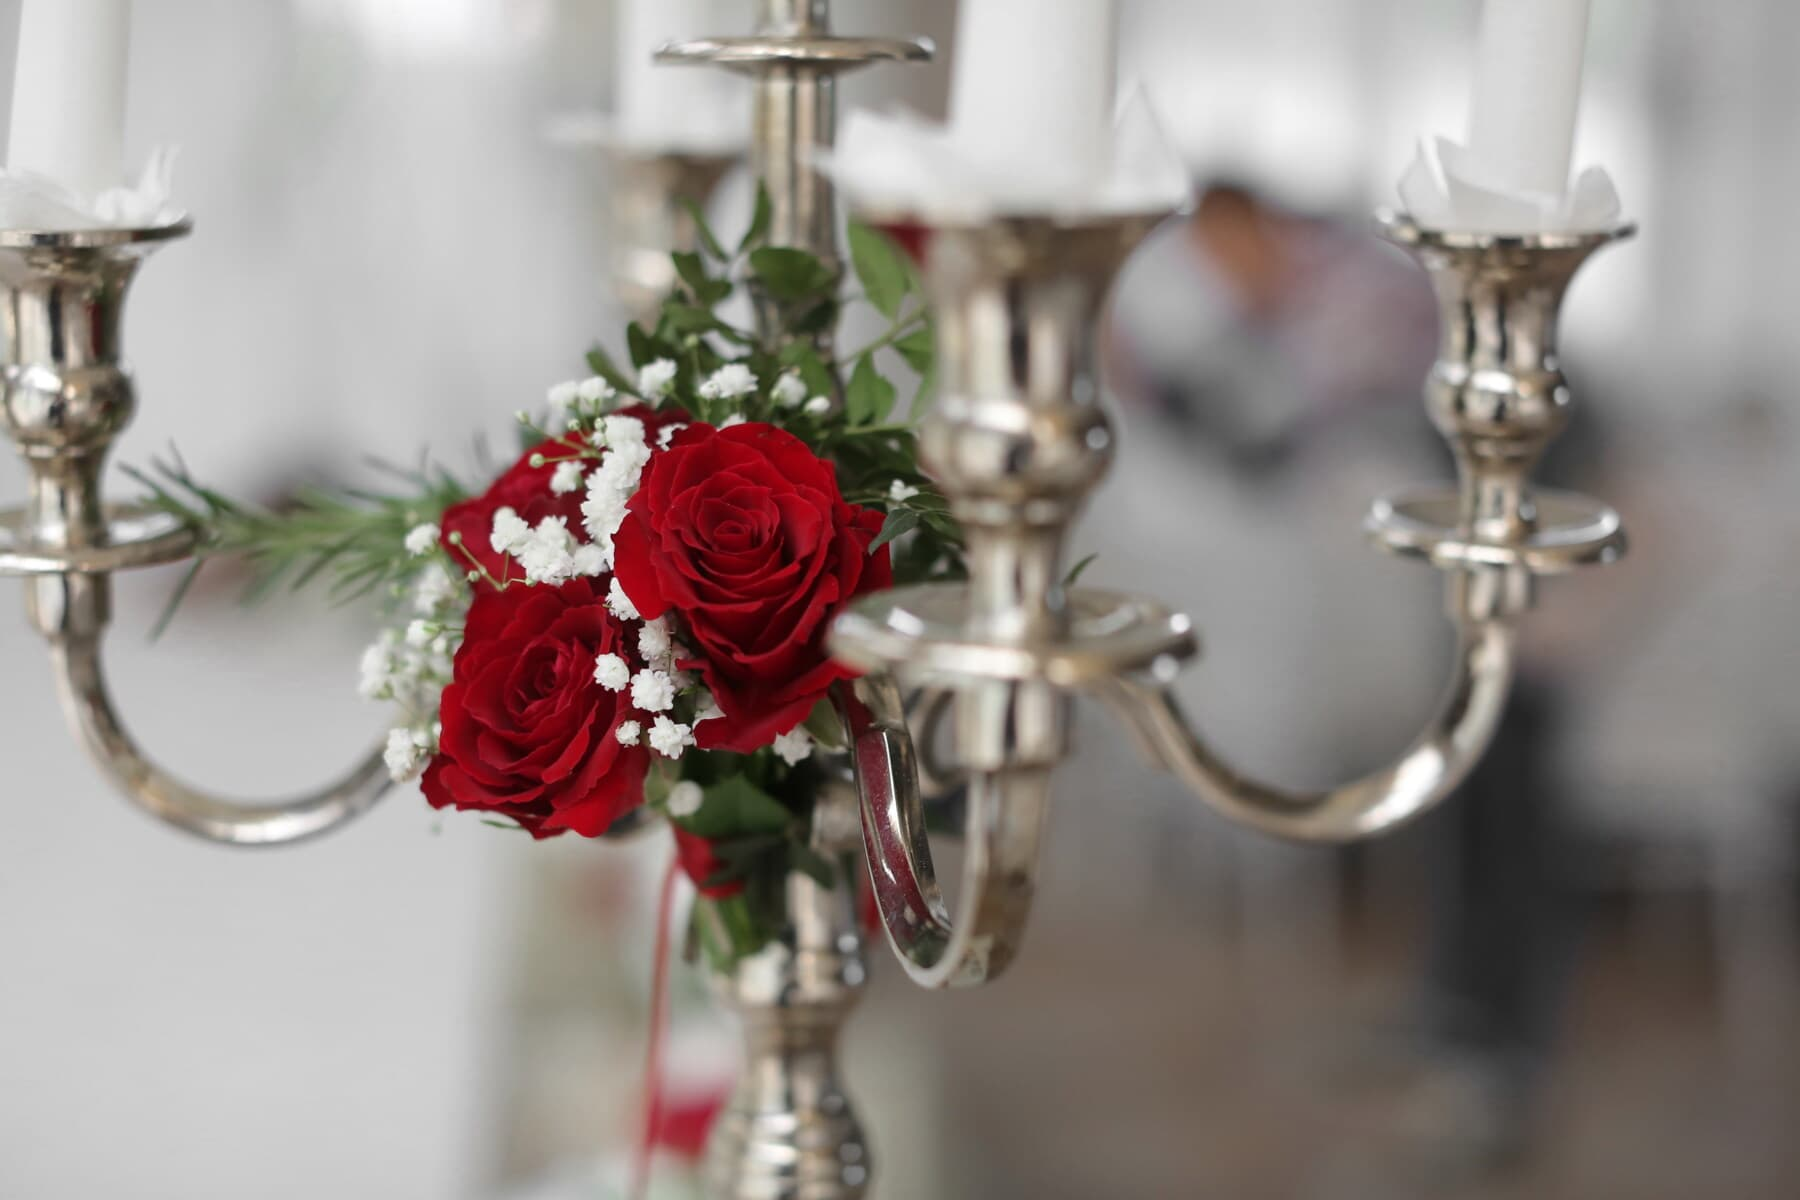 candlestick, silver, decorative, red, elegant, white, candles, bouquet, decoration, candle